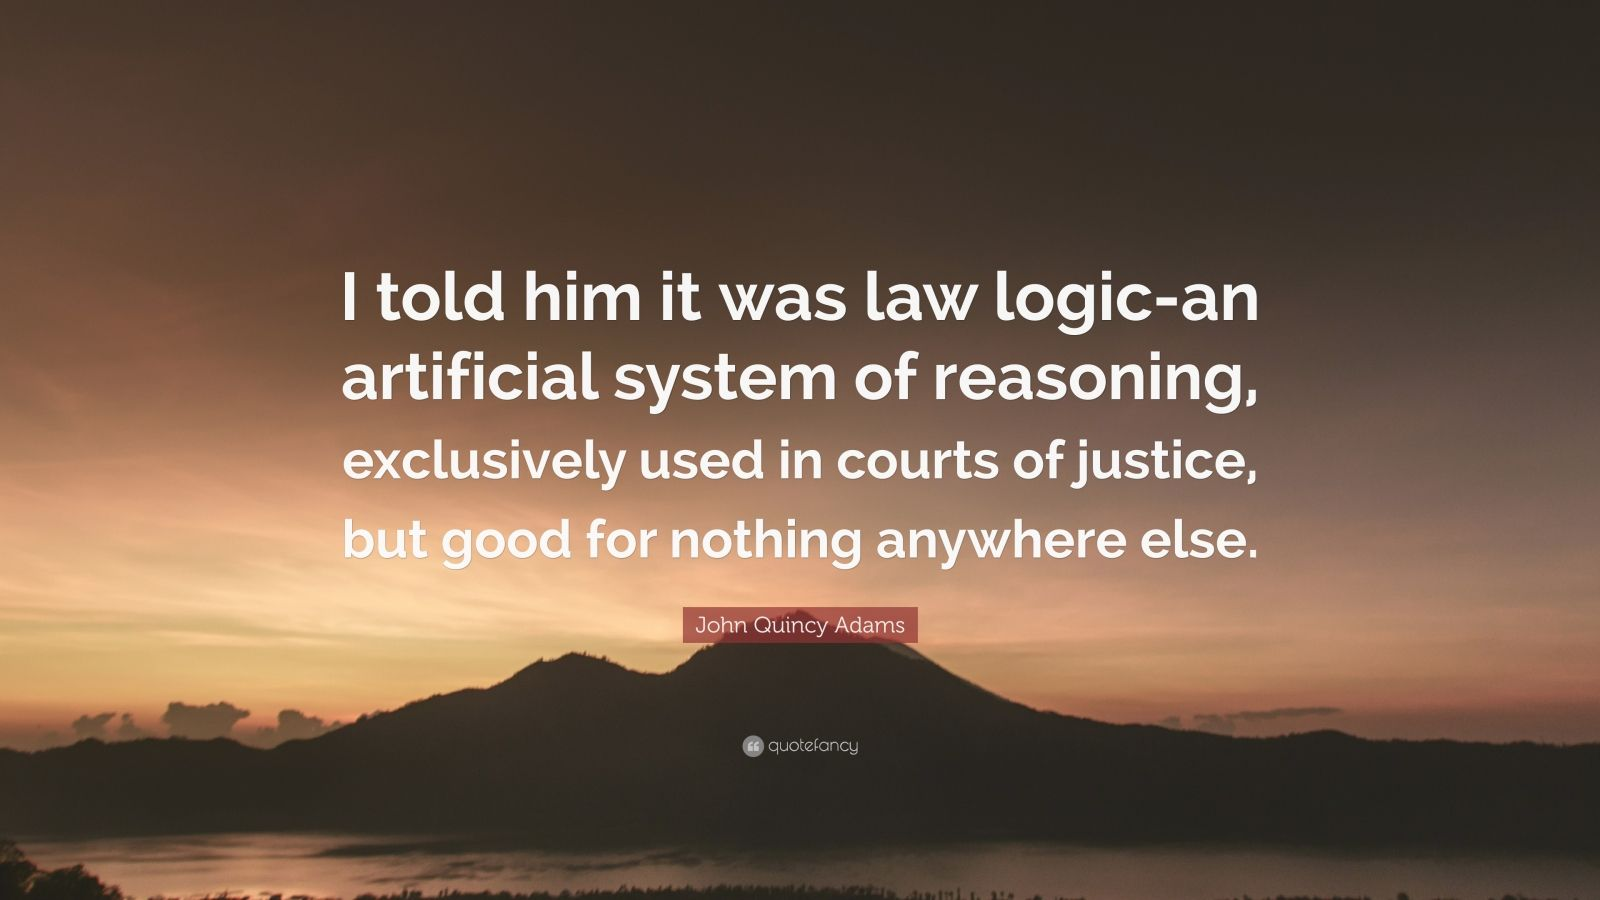 """John Quincy Adams Quote: """"I told him it was law logic-an artificial system of reasoning, exclusively used in courts of justice, but good for nothing anywhere else."""""""